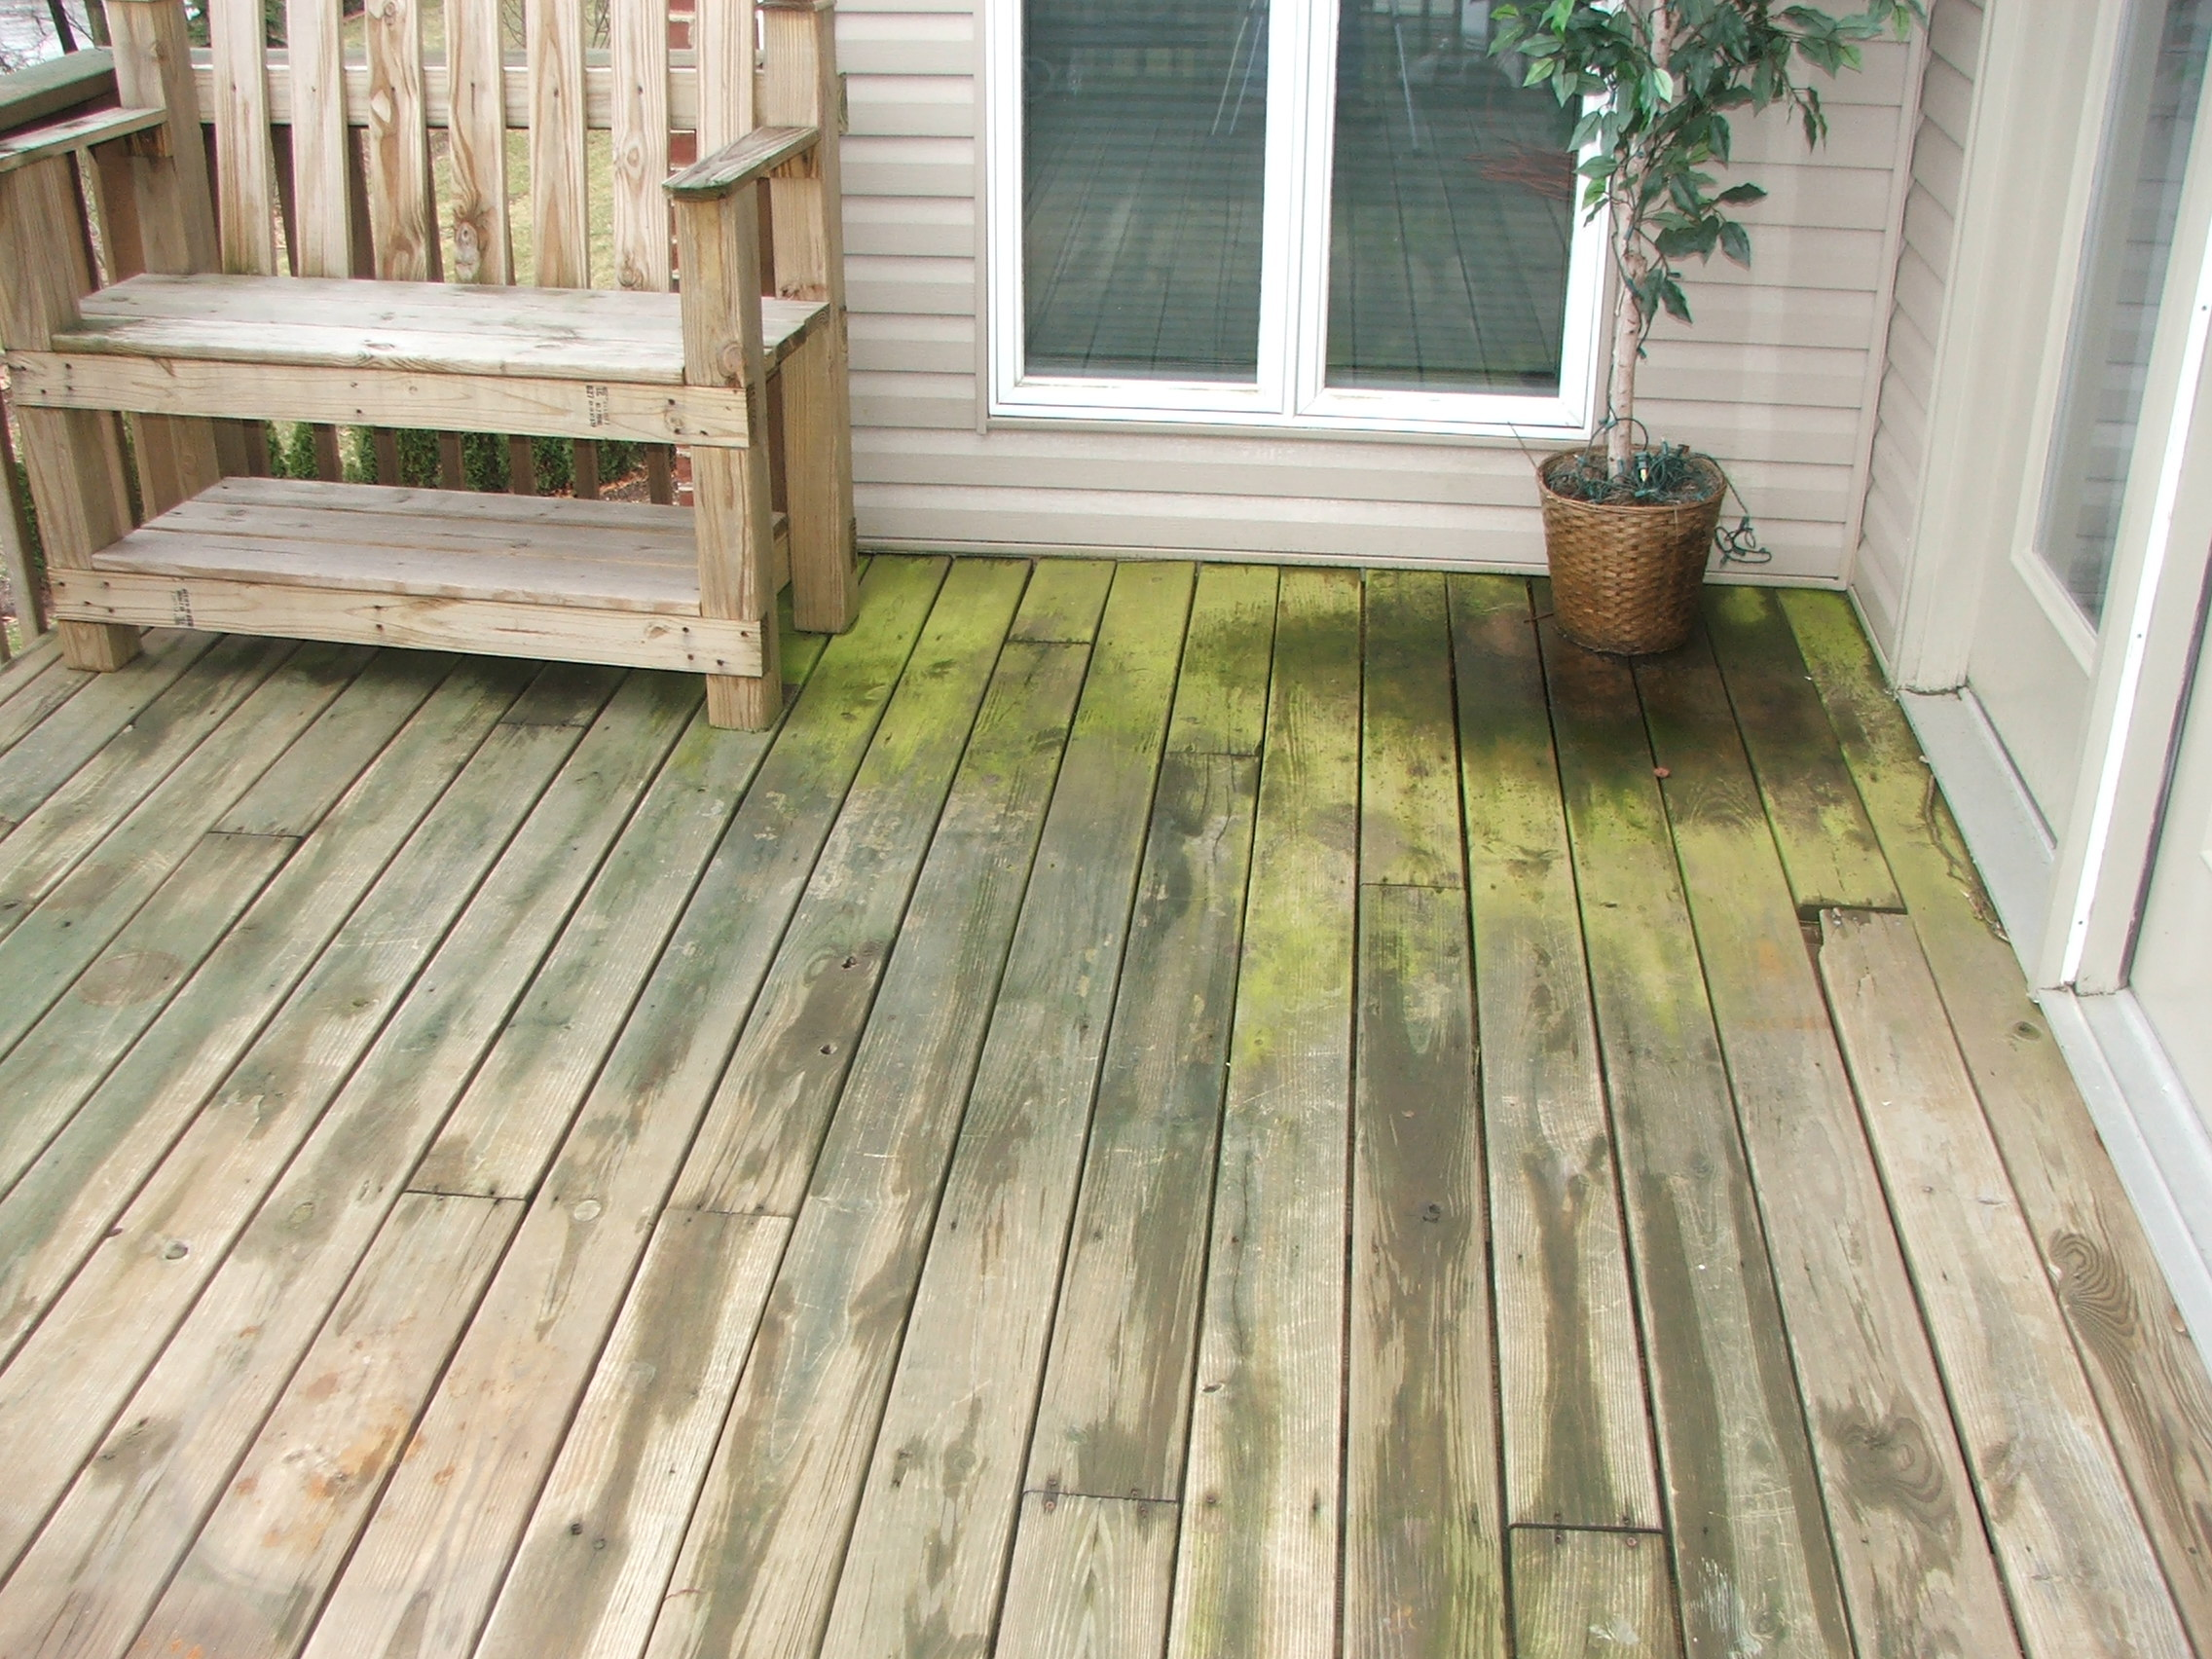 Weather, dirty, green-algae covered wood deck.